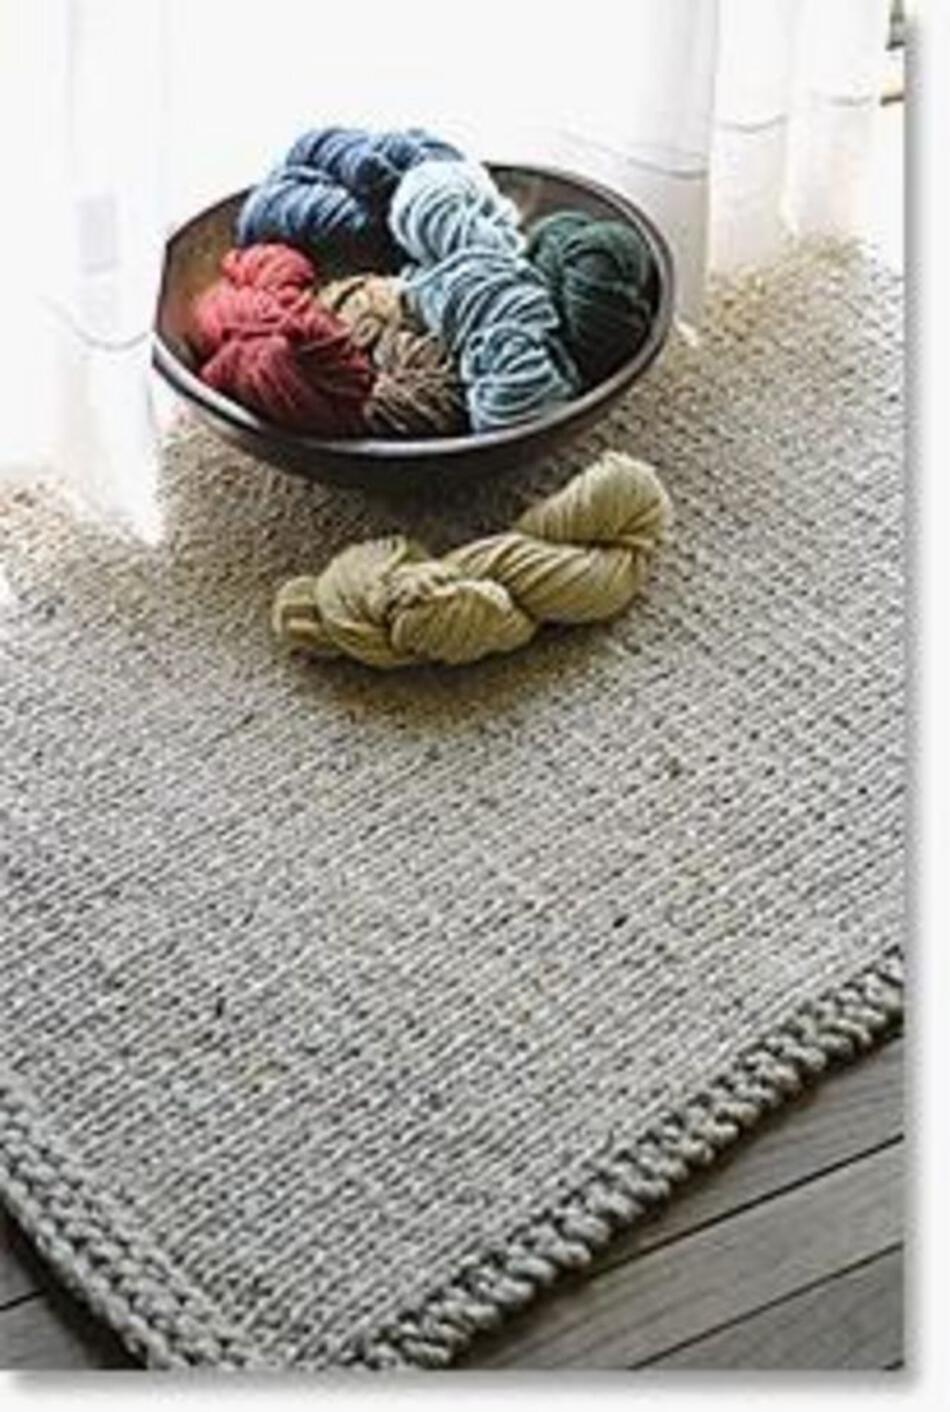 Knit Rug Pattern Free : Knitted Rectangular Rug - Halcyon Classic Rug Wool, Knitting Pattern - Halcyo...